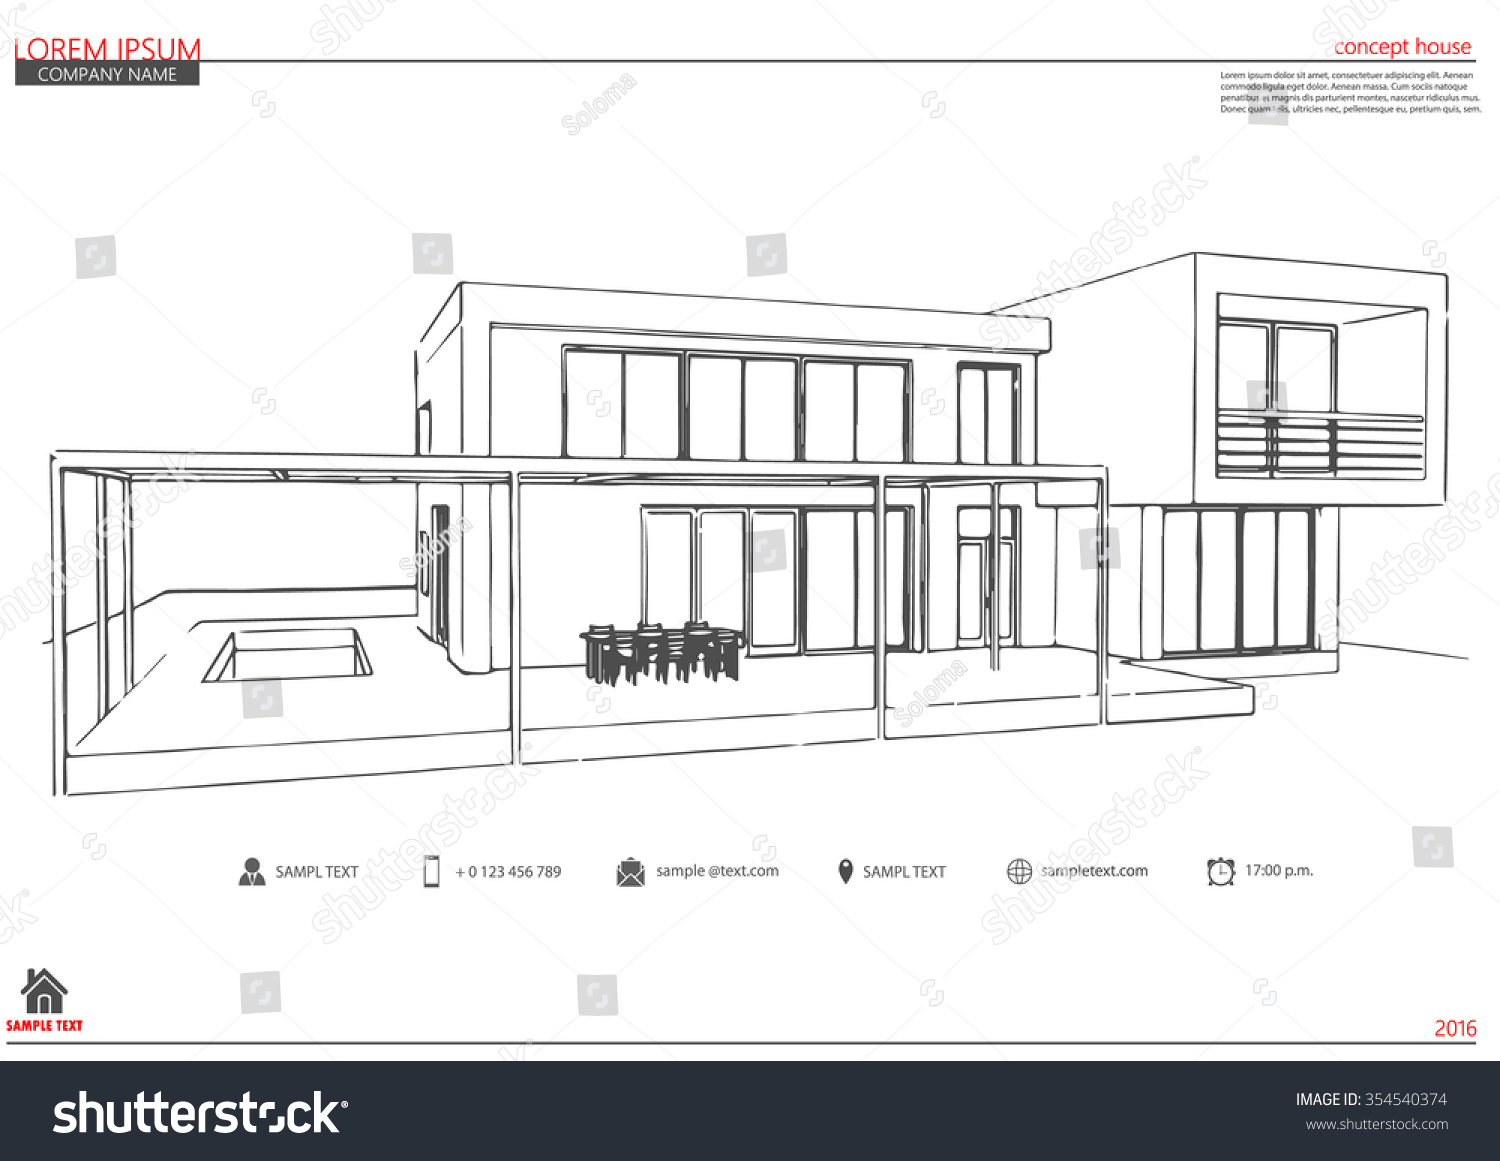 Wireframe Blueprint Drawing 3 D Building Vector Stock Vector ...